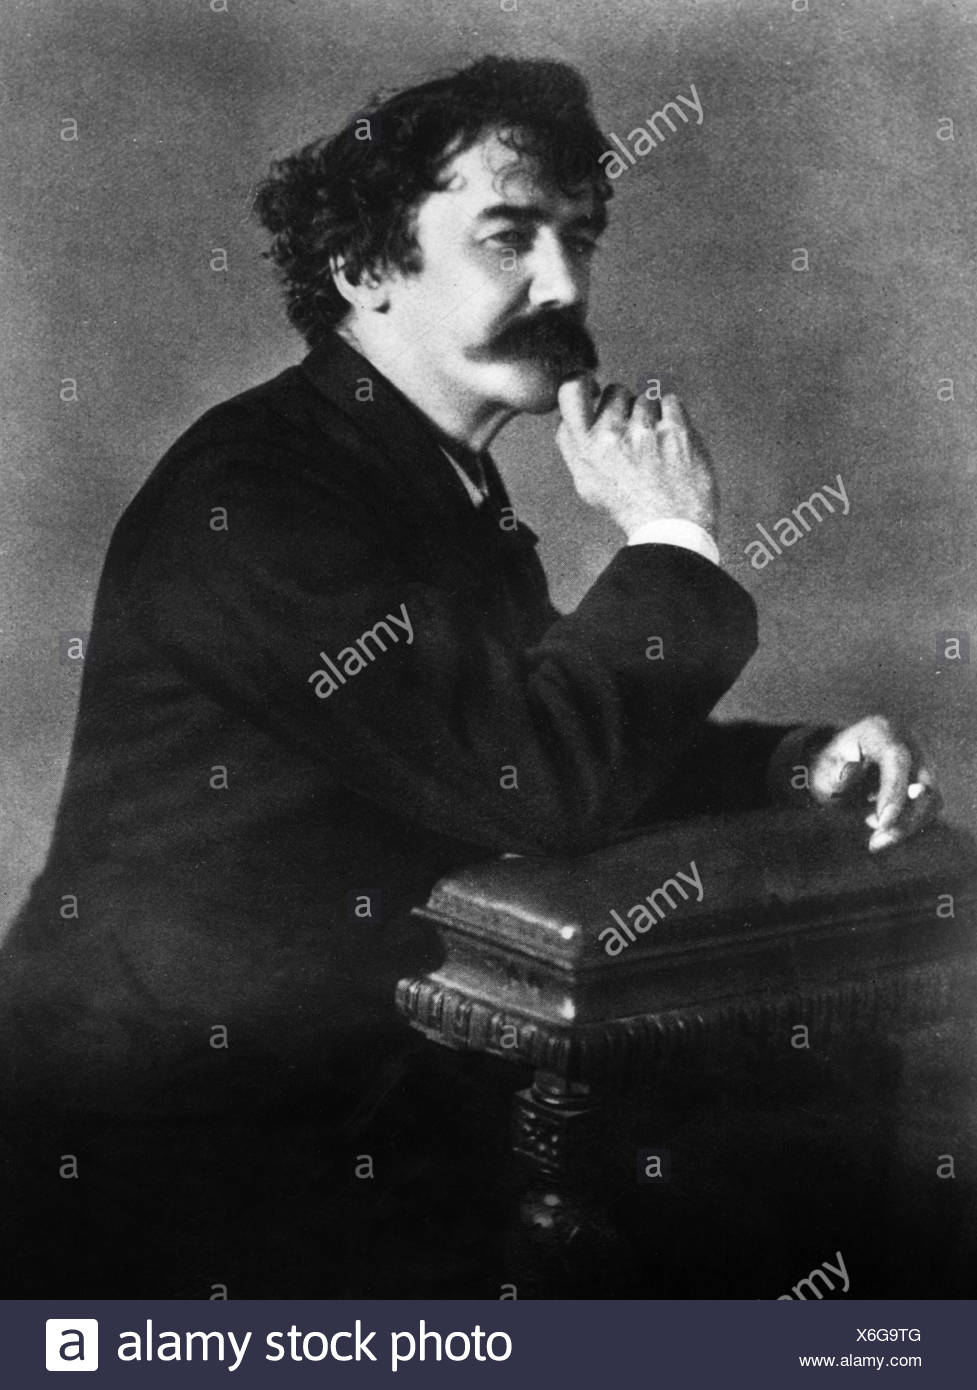 Whistler, James Abbot McNeill, 10.7.1834 - 17.7.1903, US painter, photo, 19th century, Additional-Rights-Clearances-NA - Stock Image